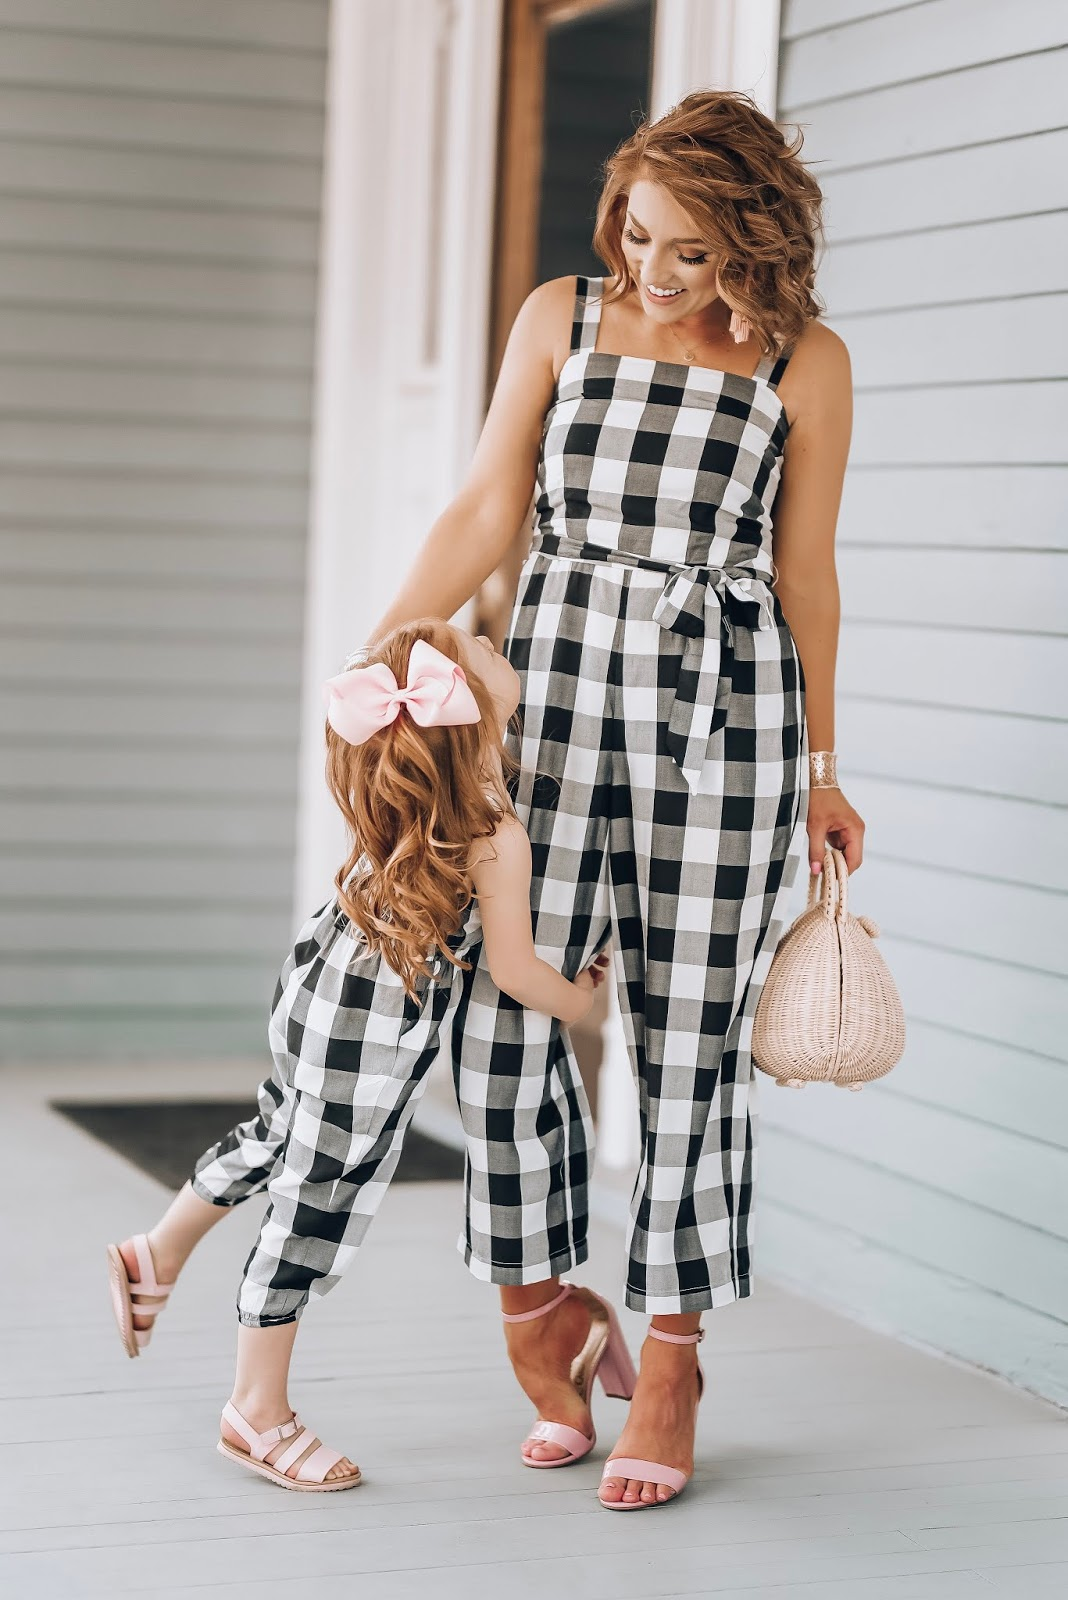 Mommy & Me Gingham Jumpsuits + What I Wish I Could Have Told Myself As a Young Mom - Something Delightful Blog